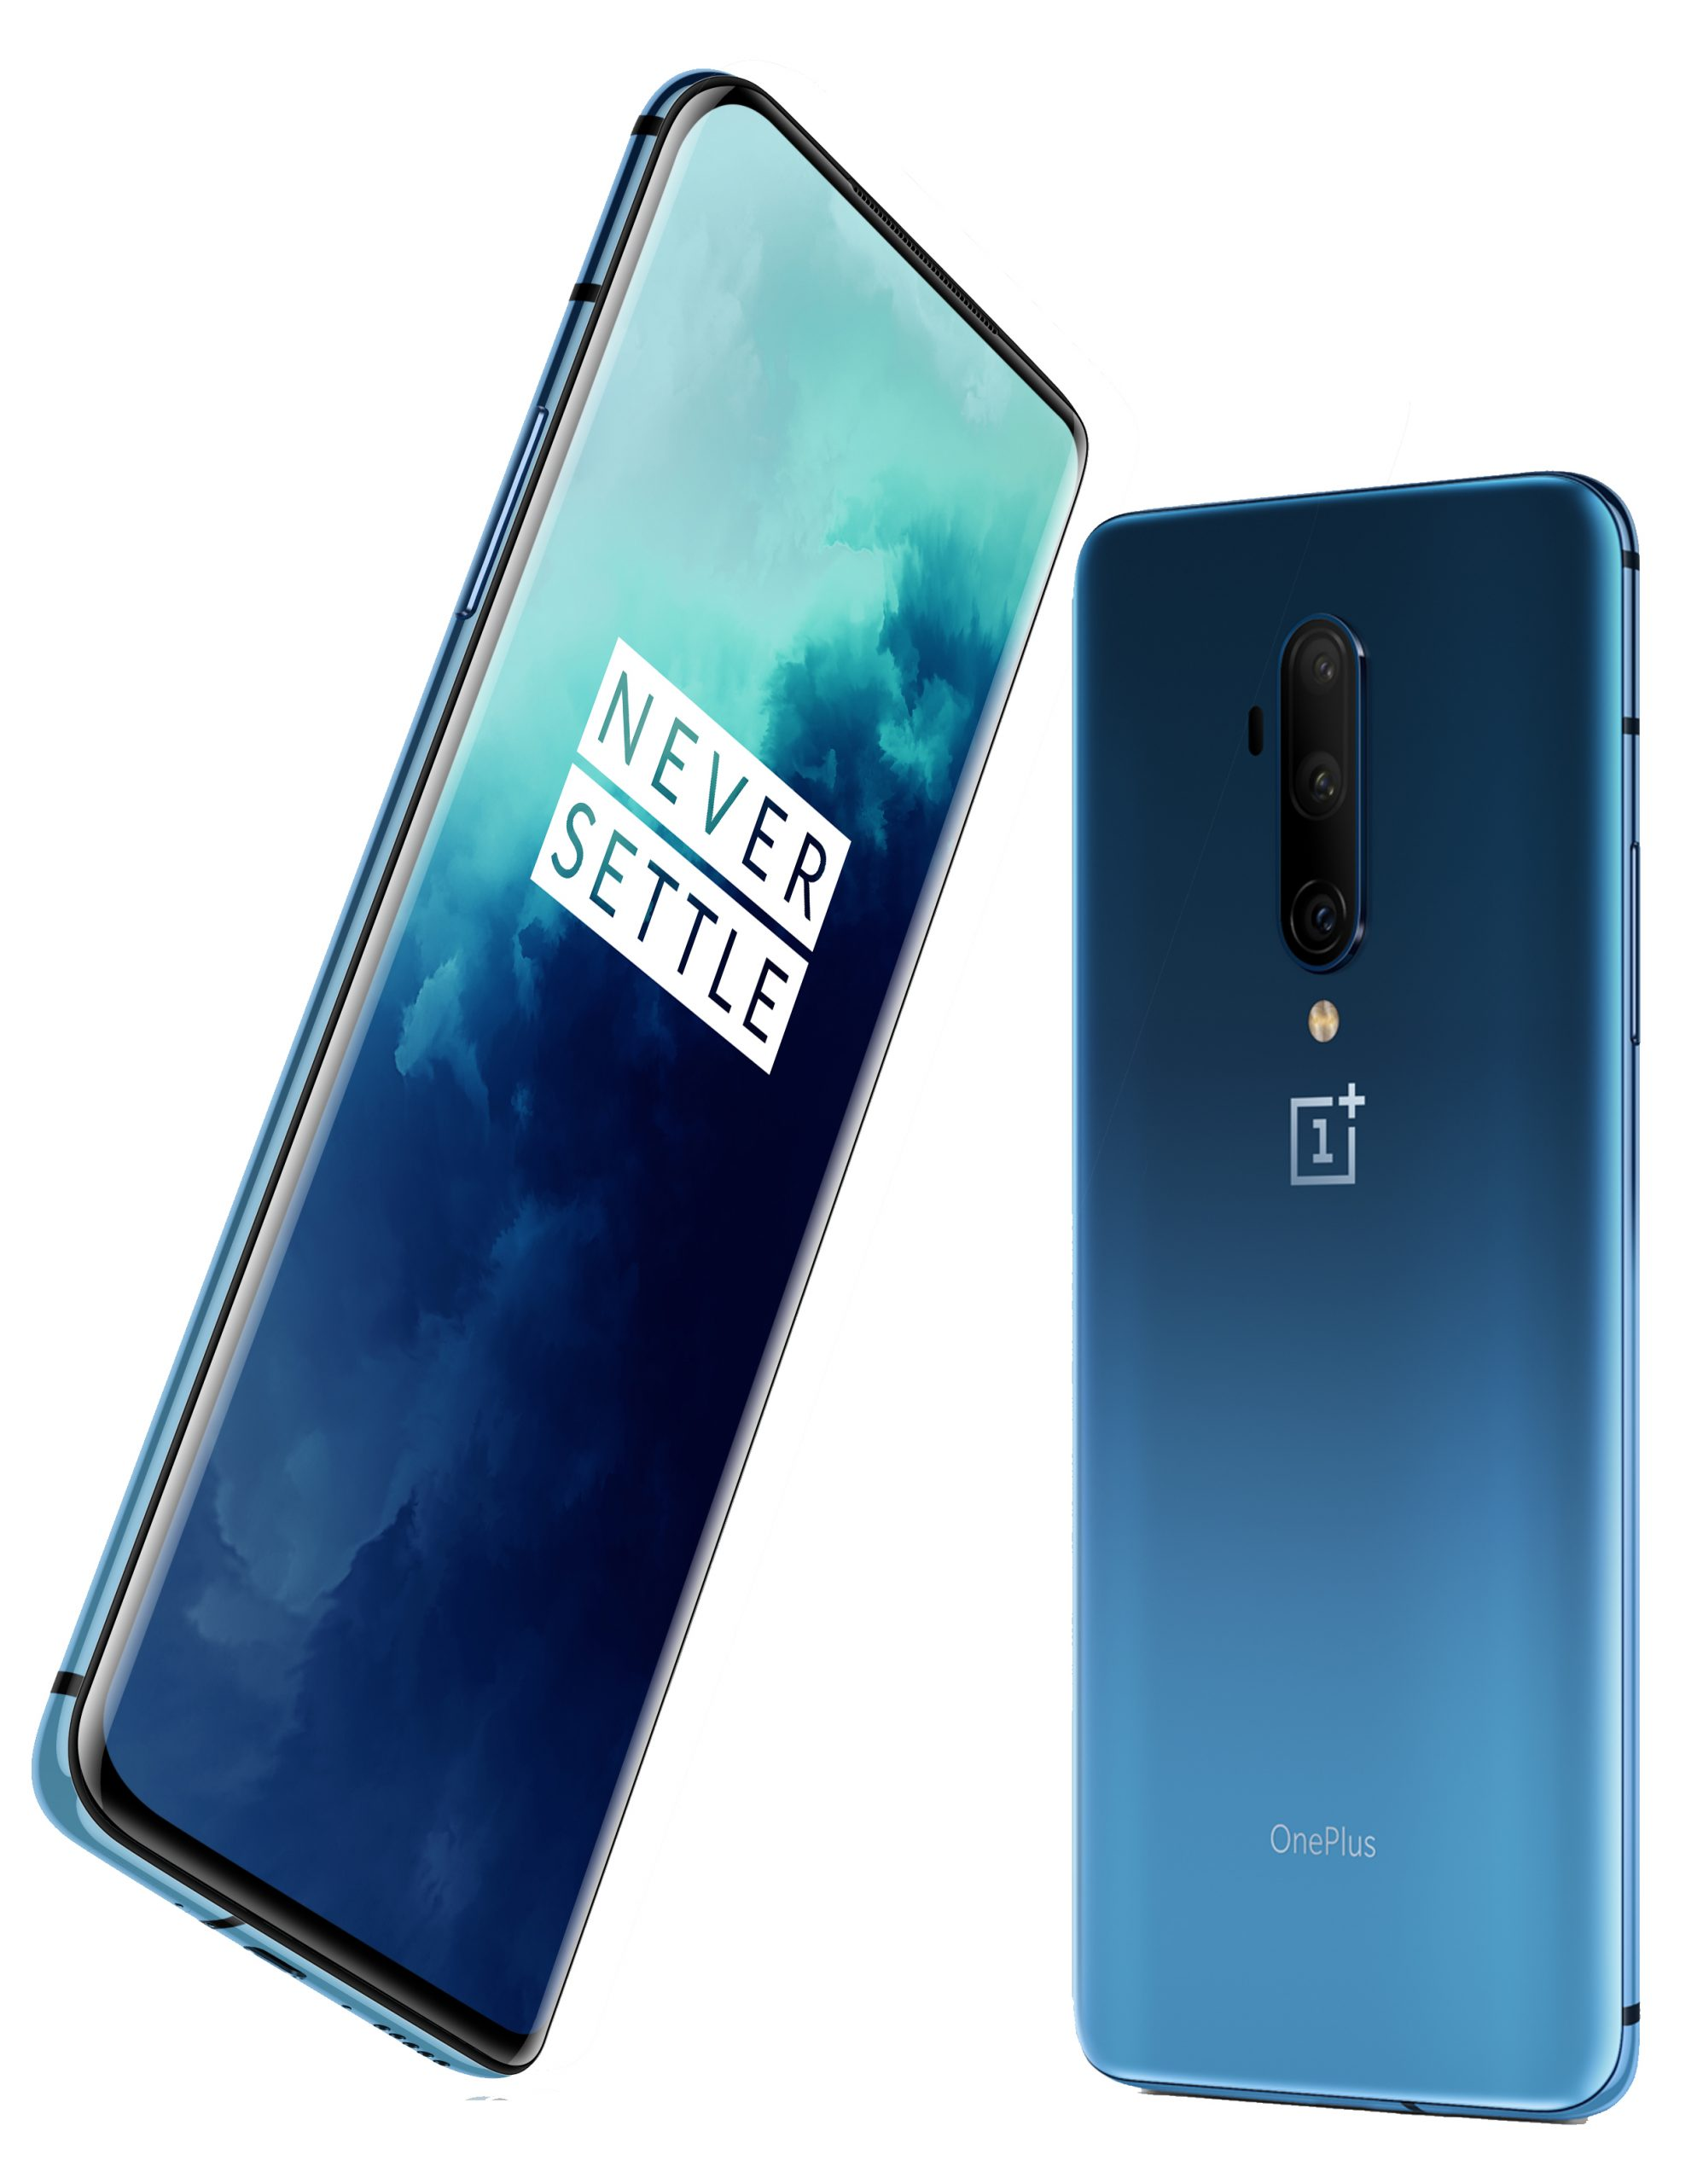 OnePlus 7T Pro launched in Nepal